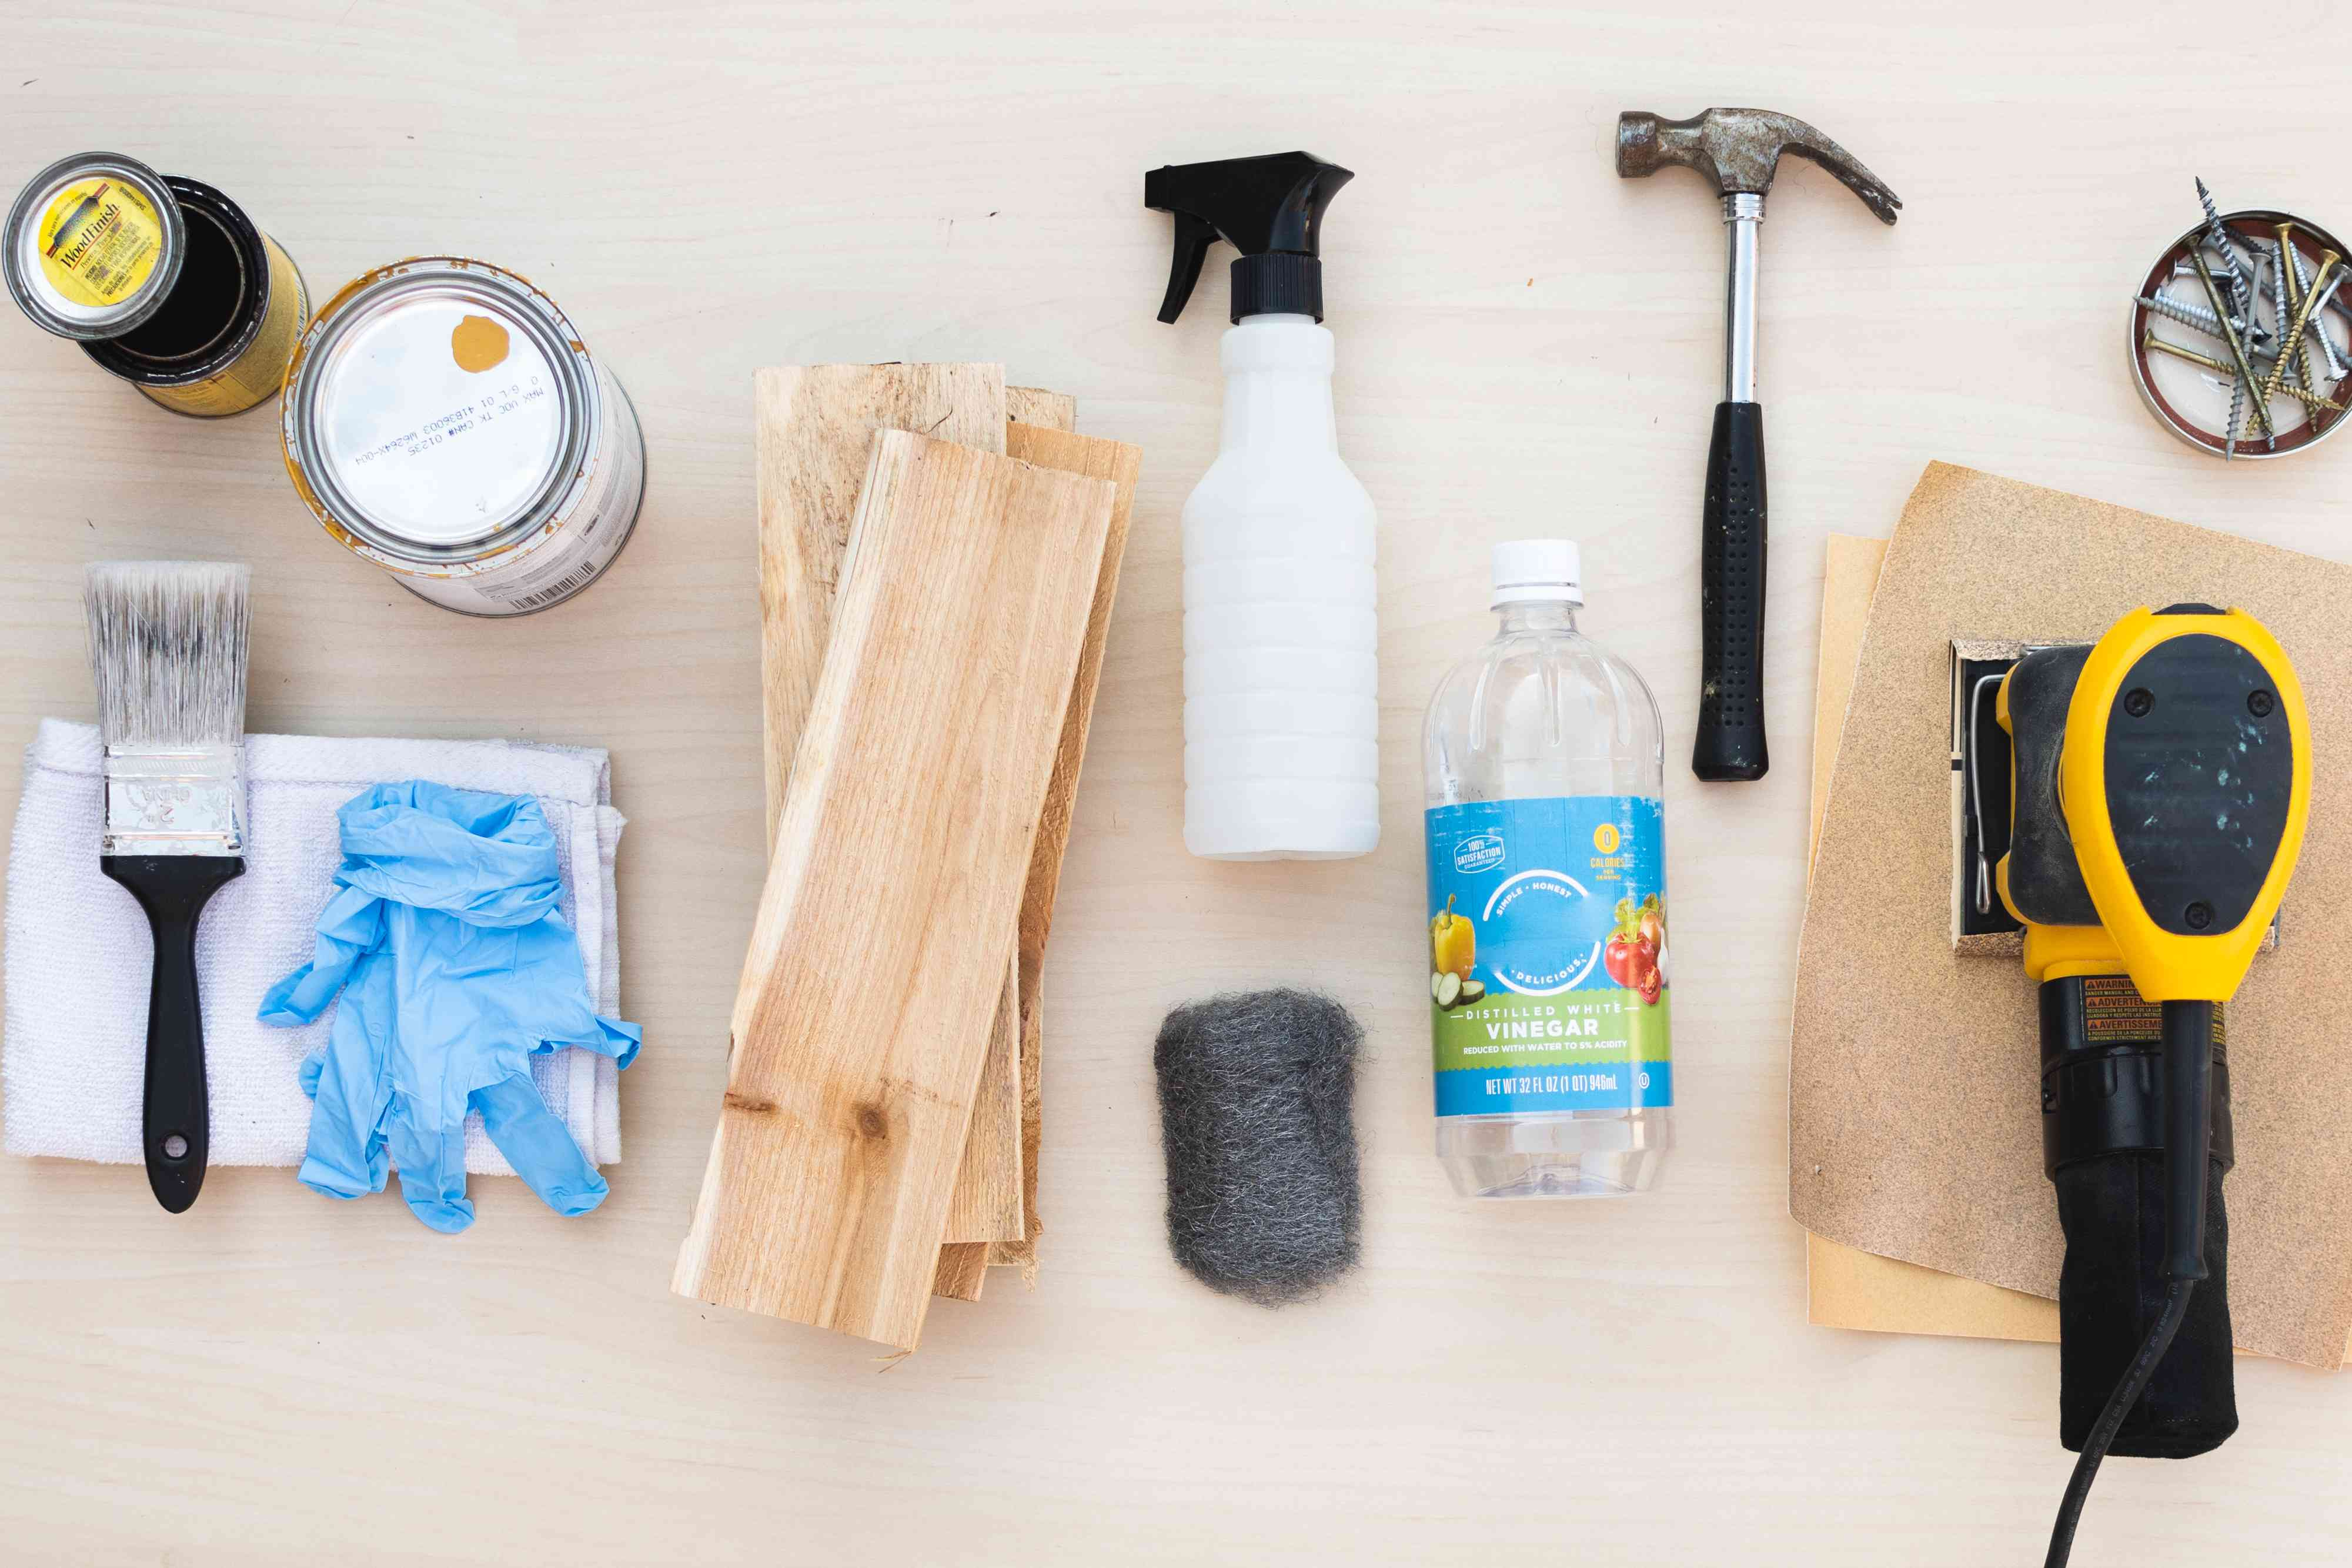 Materials and tools to distress wood and make it look old